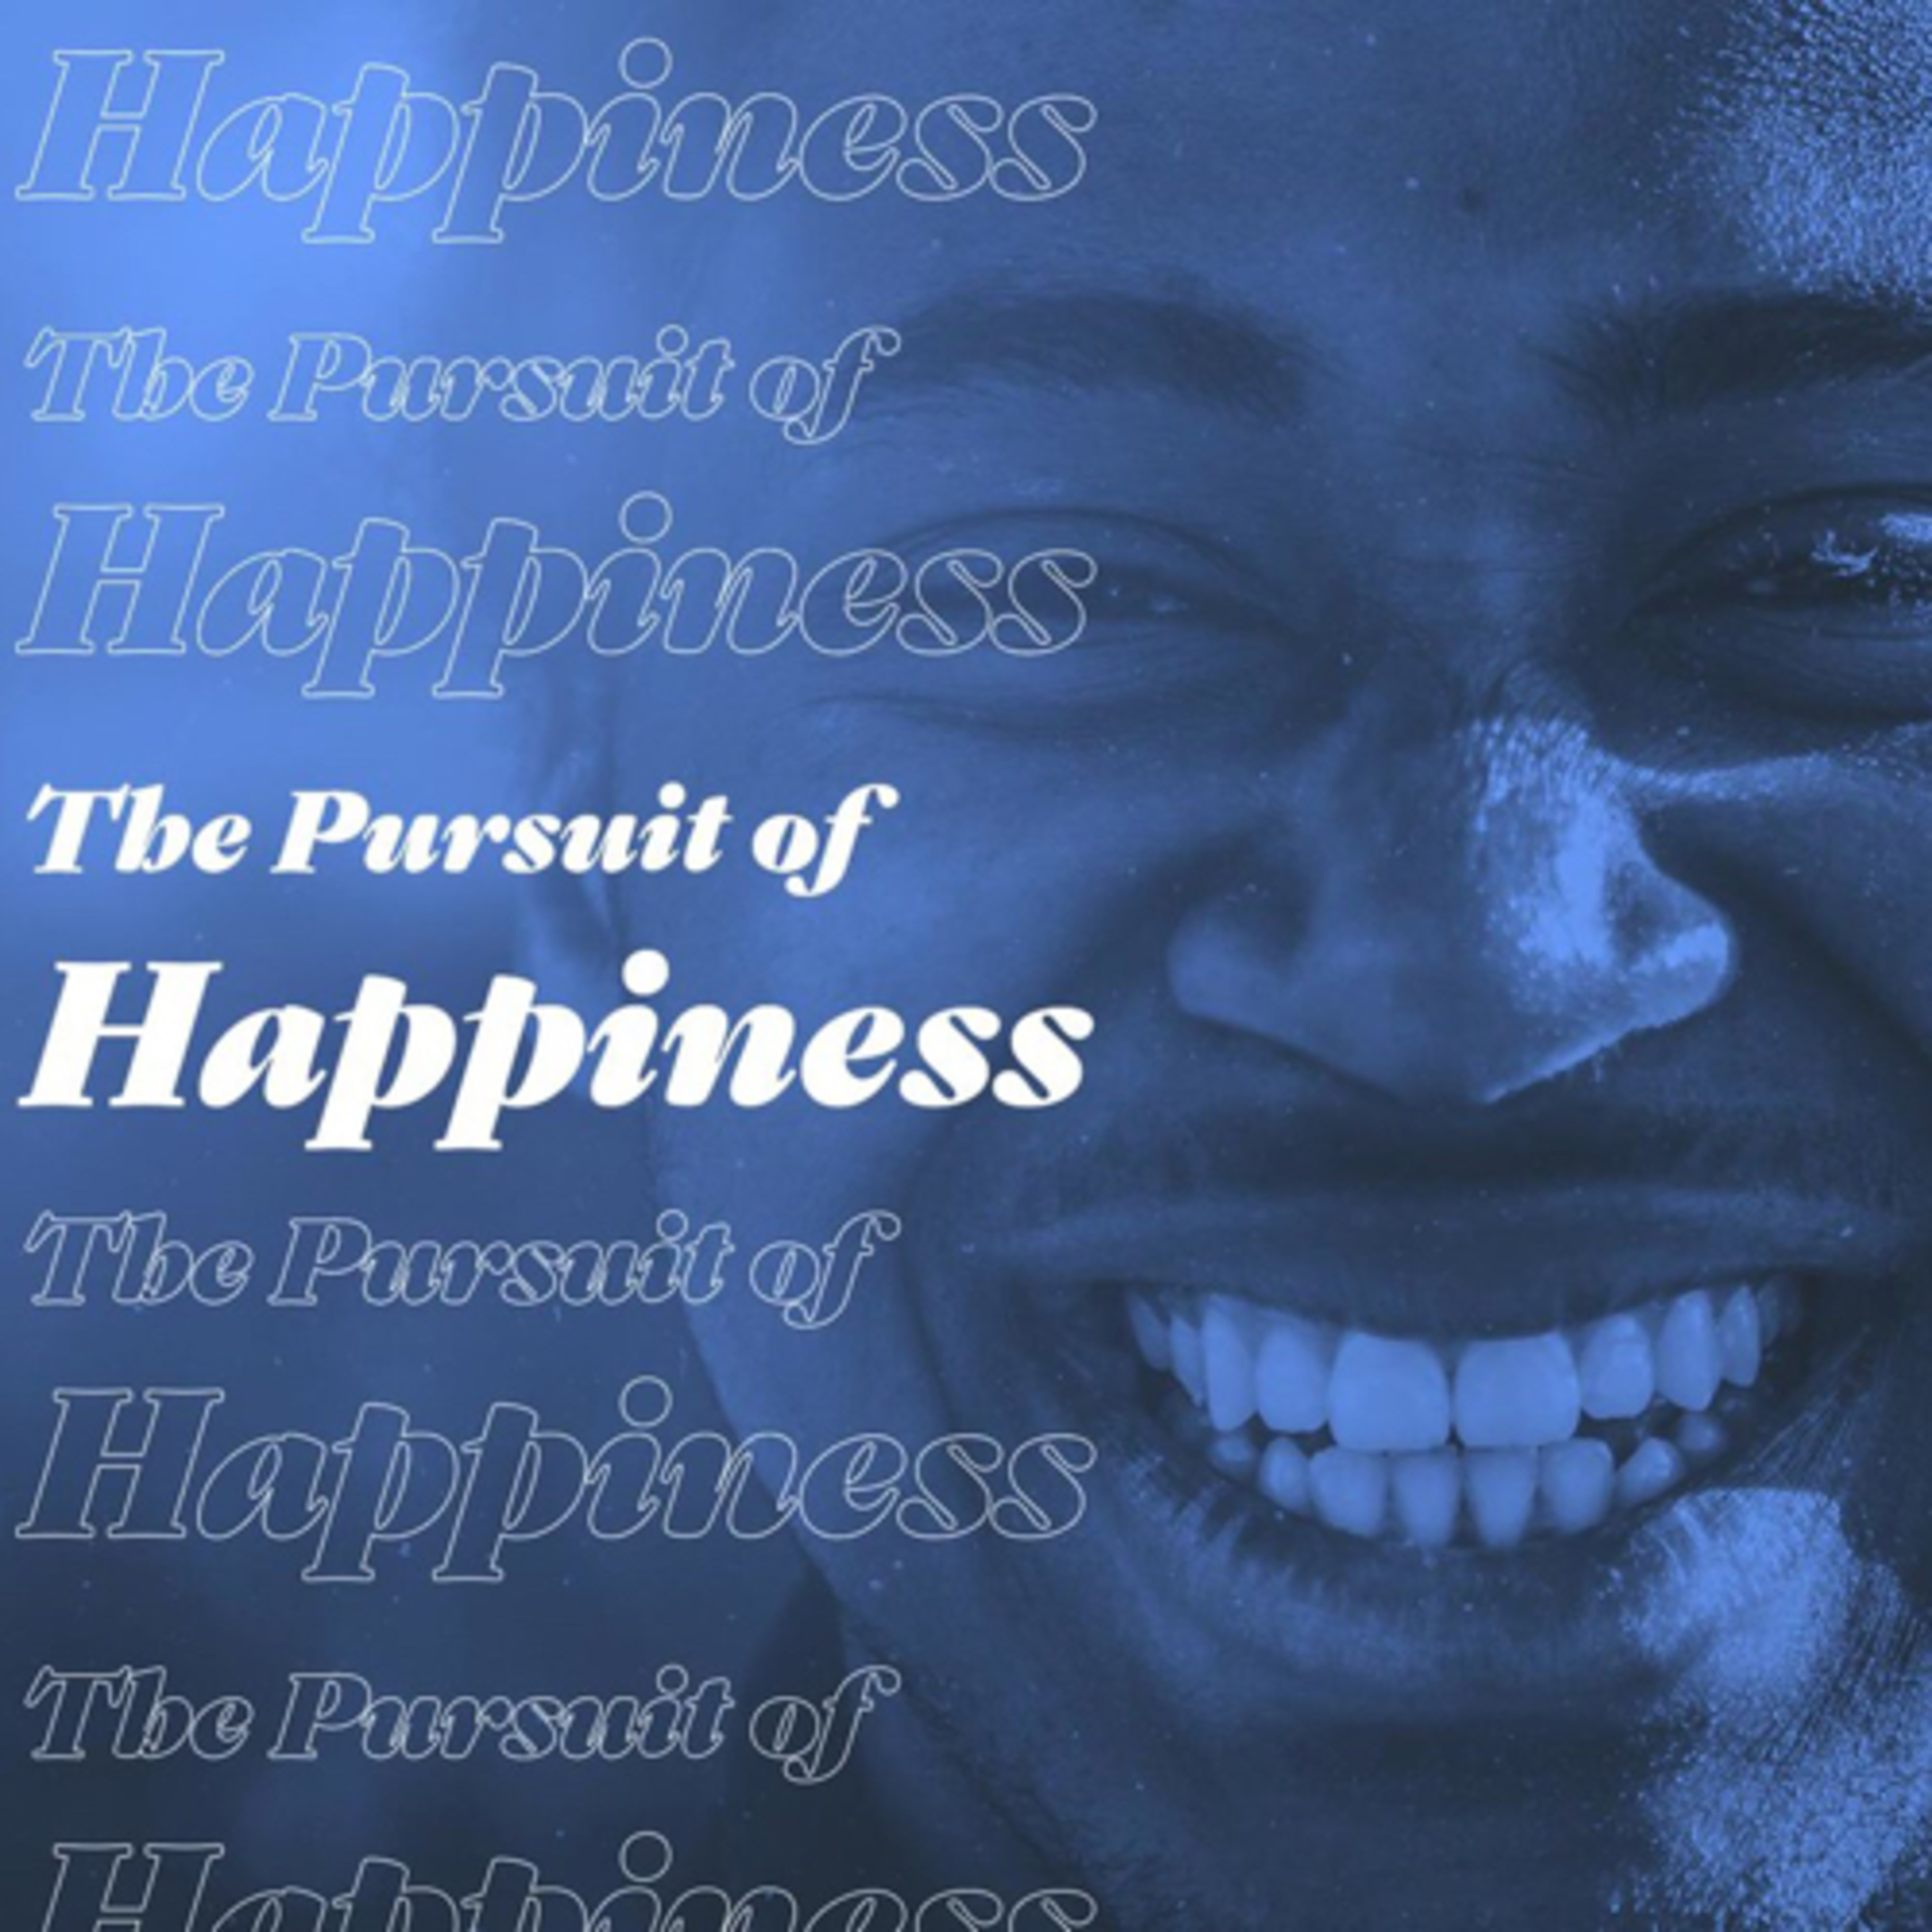 Ep.26: Are we ever truly happy? Is the pursuit of happiness attainable?